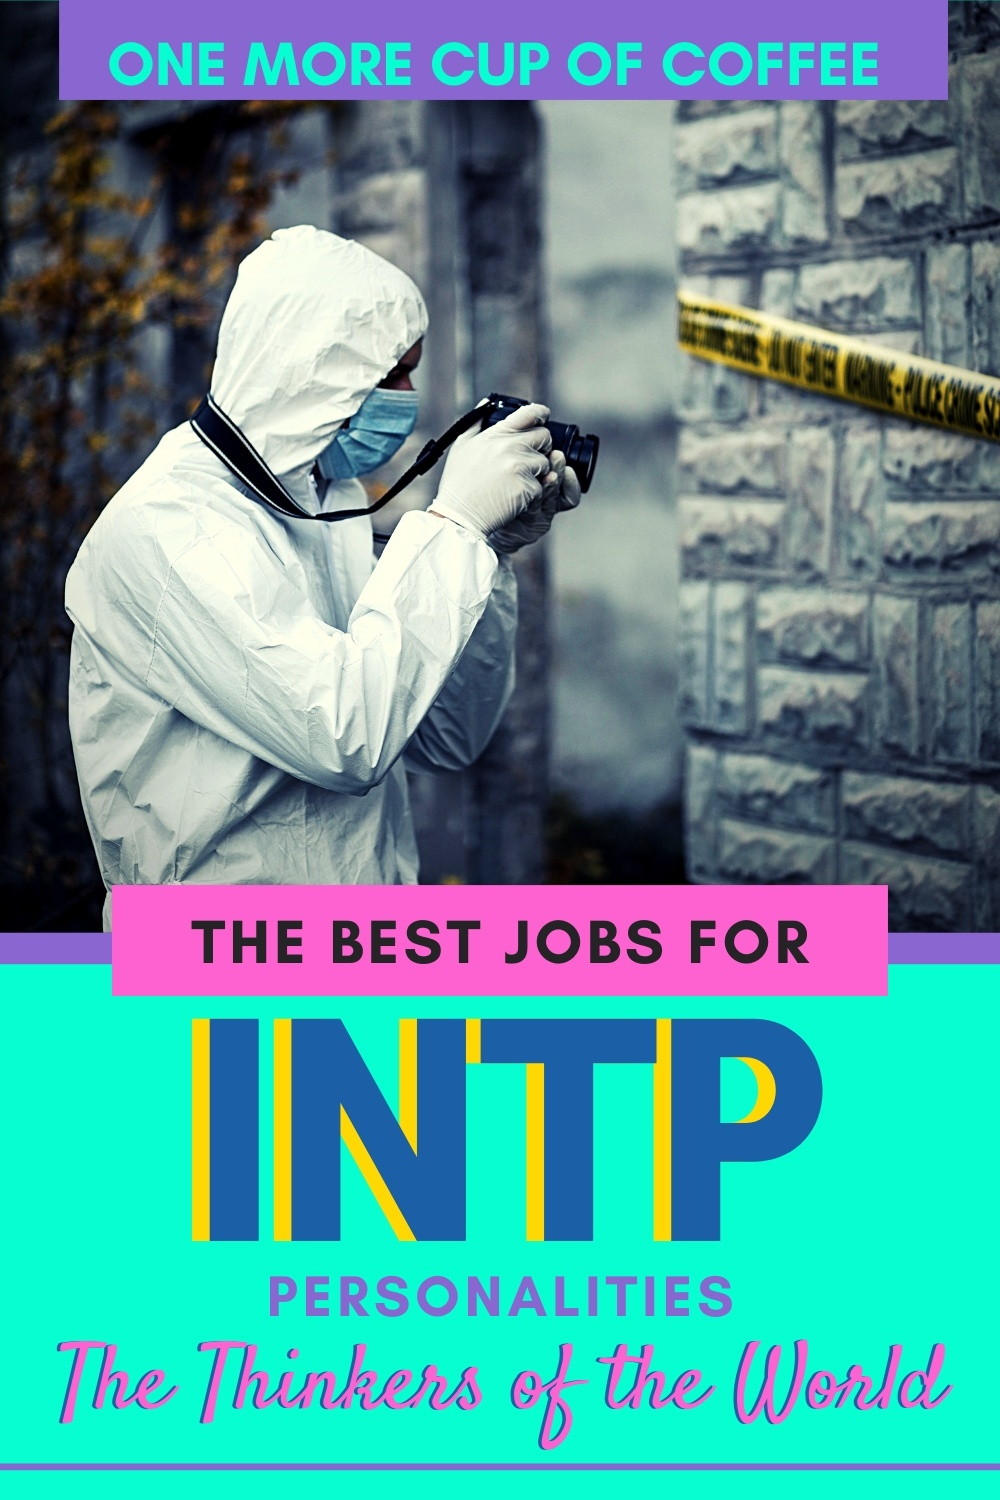 Forensic expert working a crime scene to represent jobs for ISTP personality types.